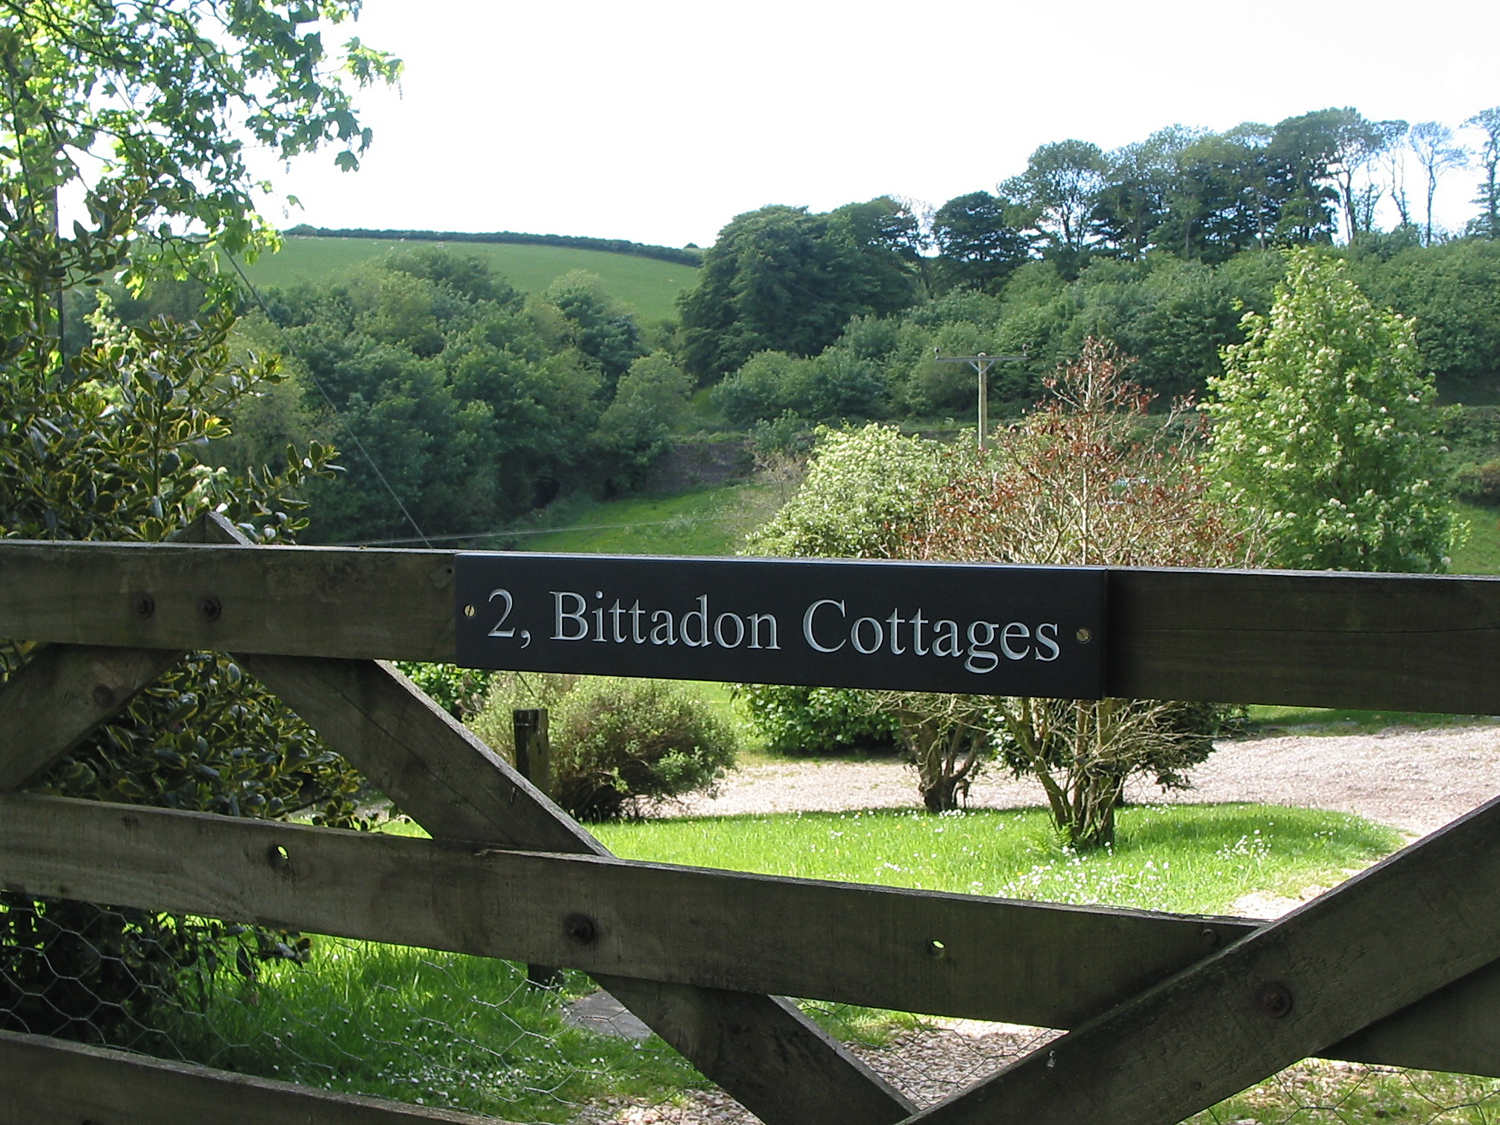 2 Bittadon Cottages